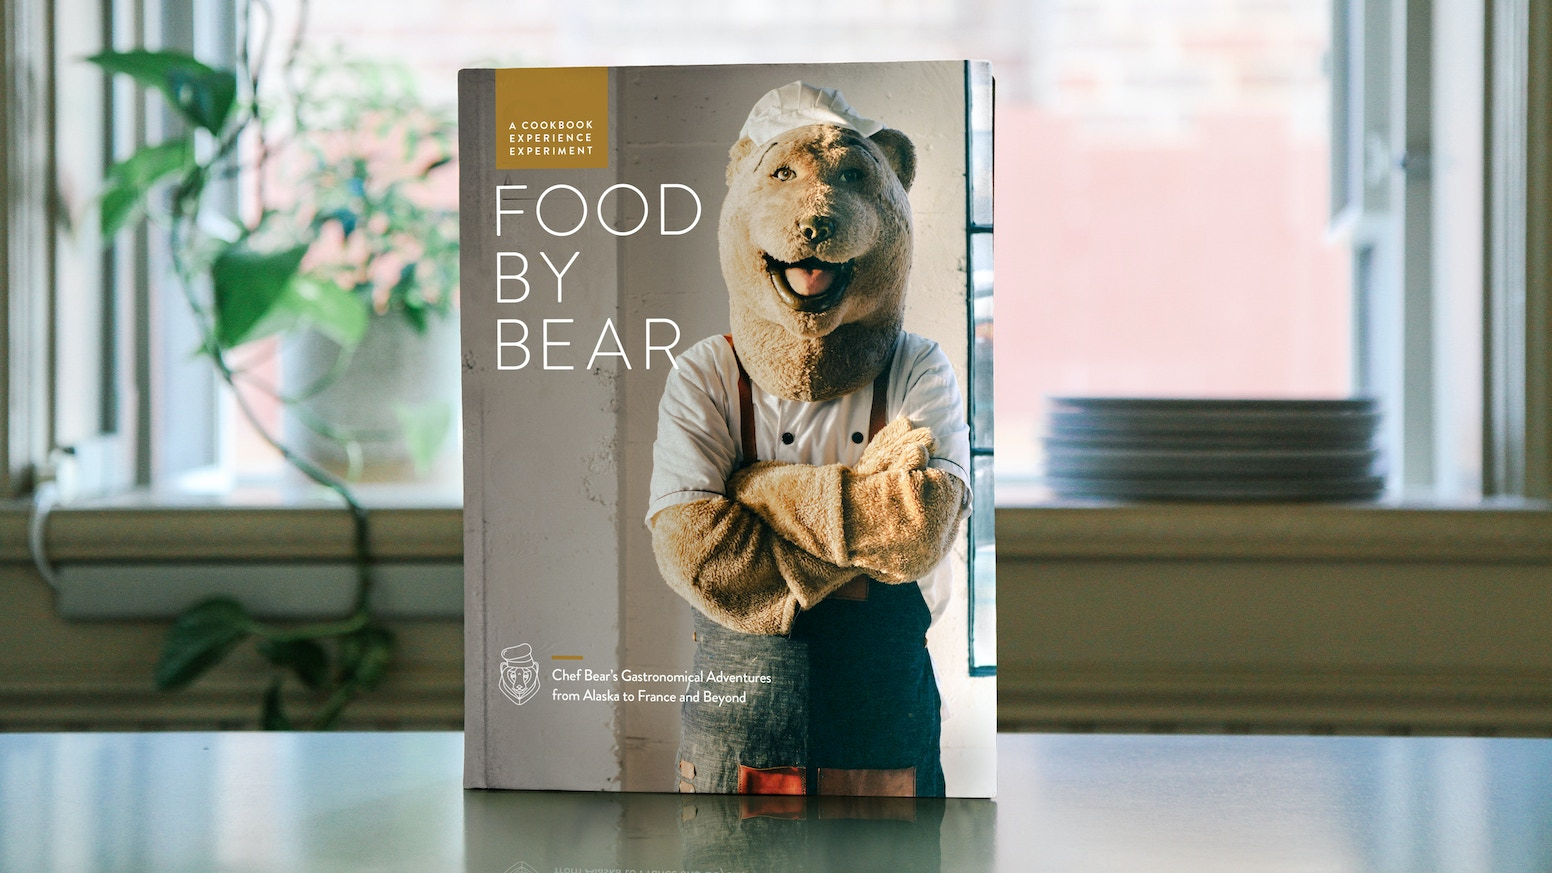 The first eating manual from Cow by Bear, featuring recipes, advice and inspired stories from Chef Bear.